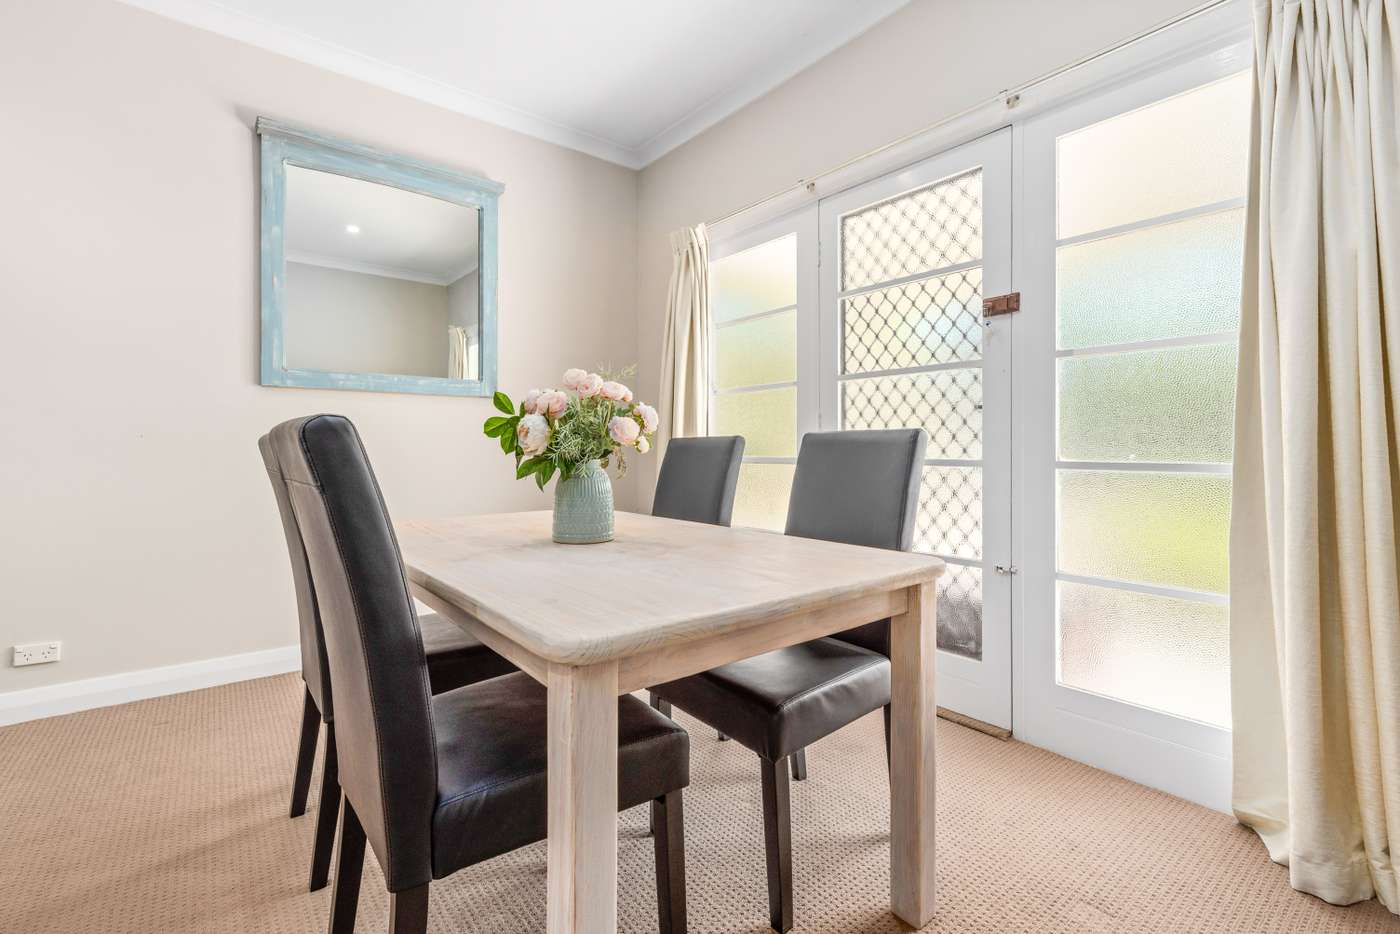 Sixth view of Homely house listing, 19 Carnley Avenue, New Lambton NSW 2305